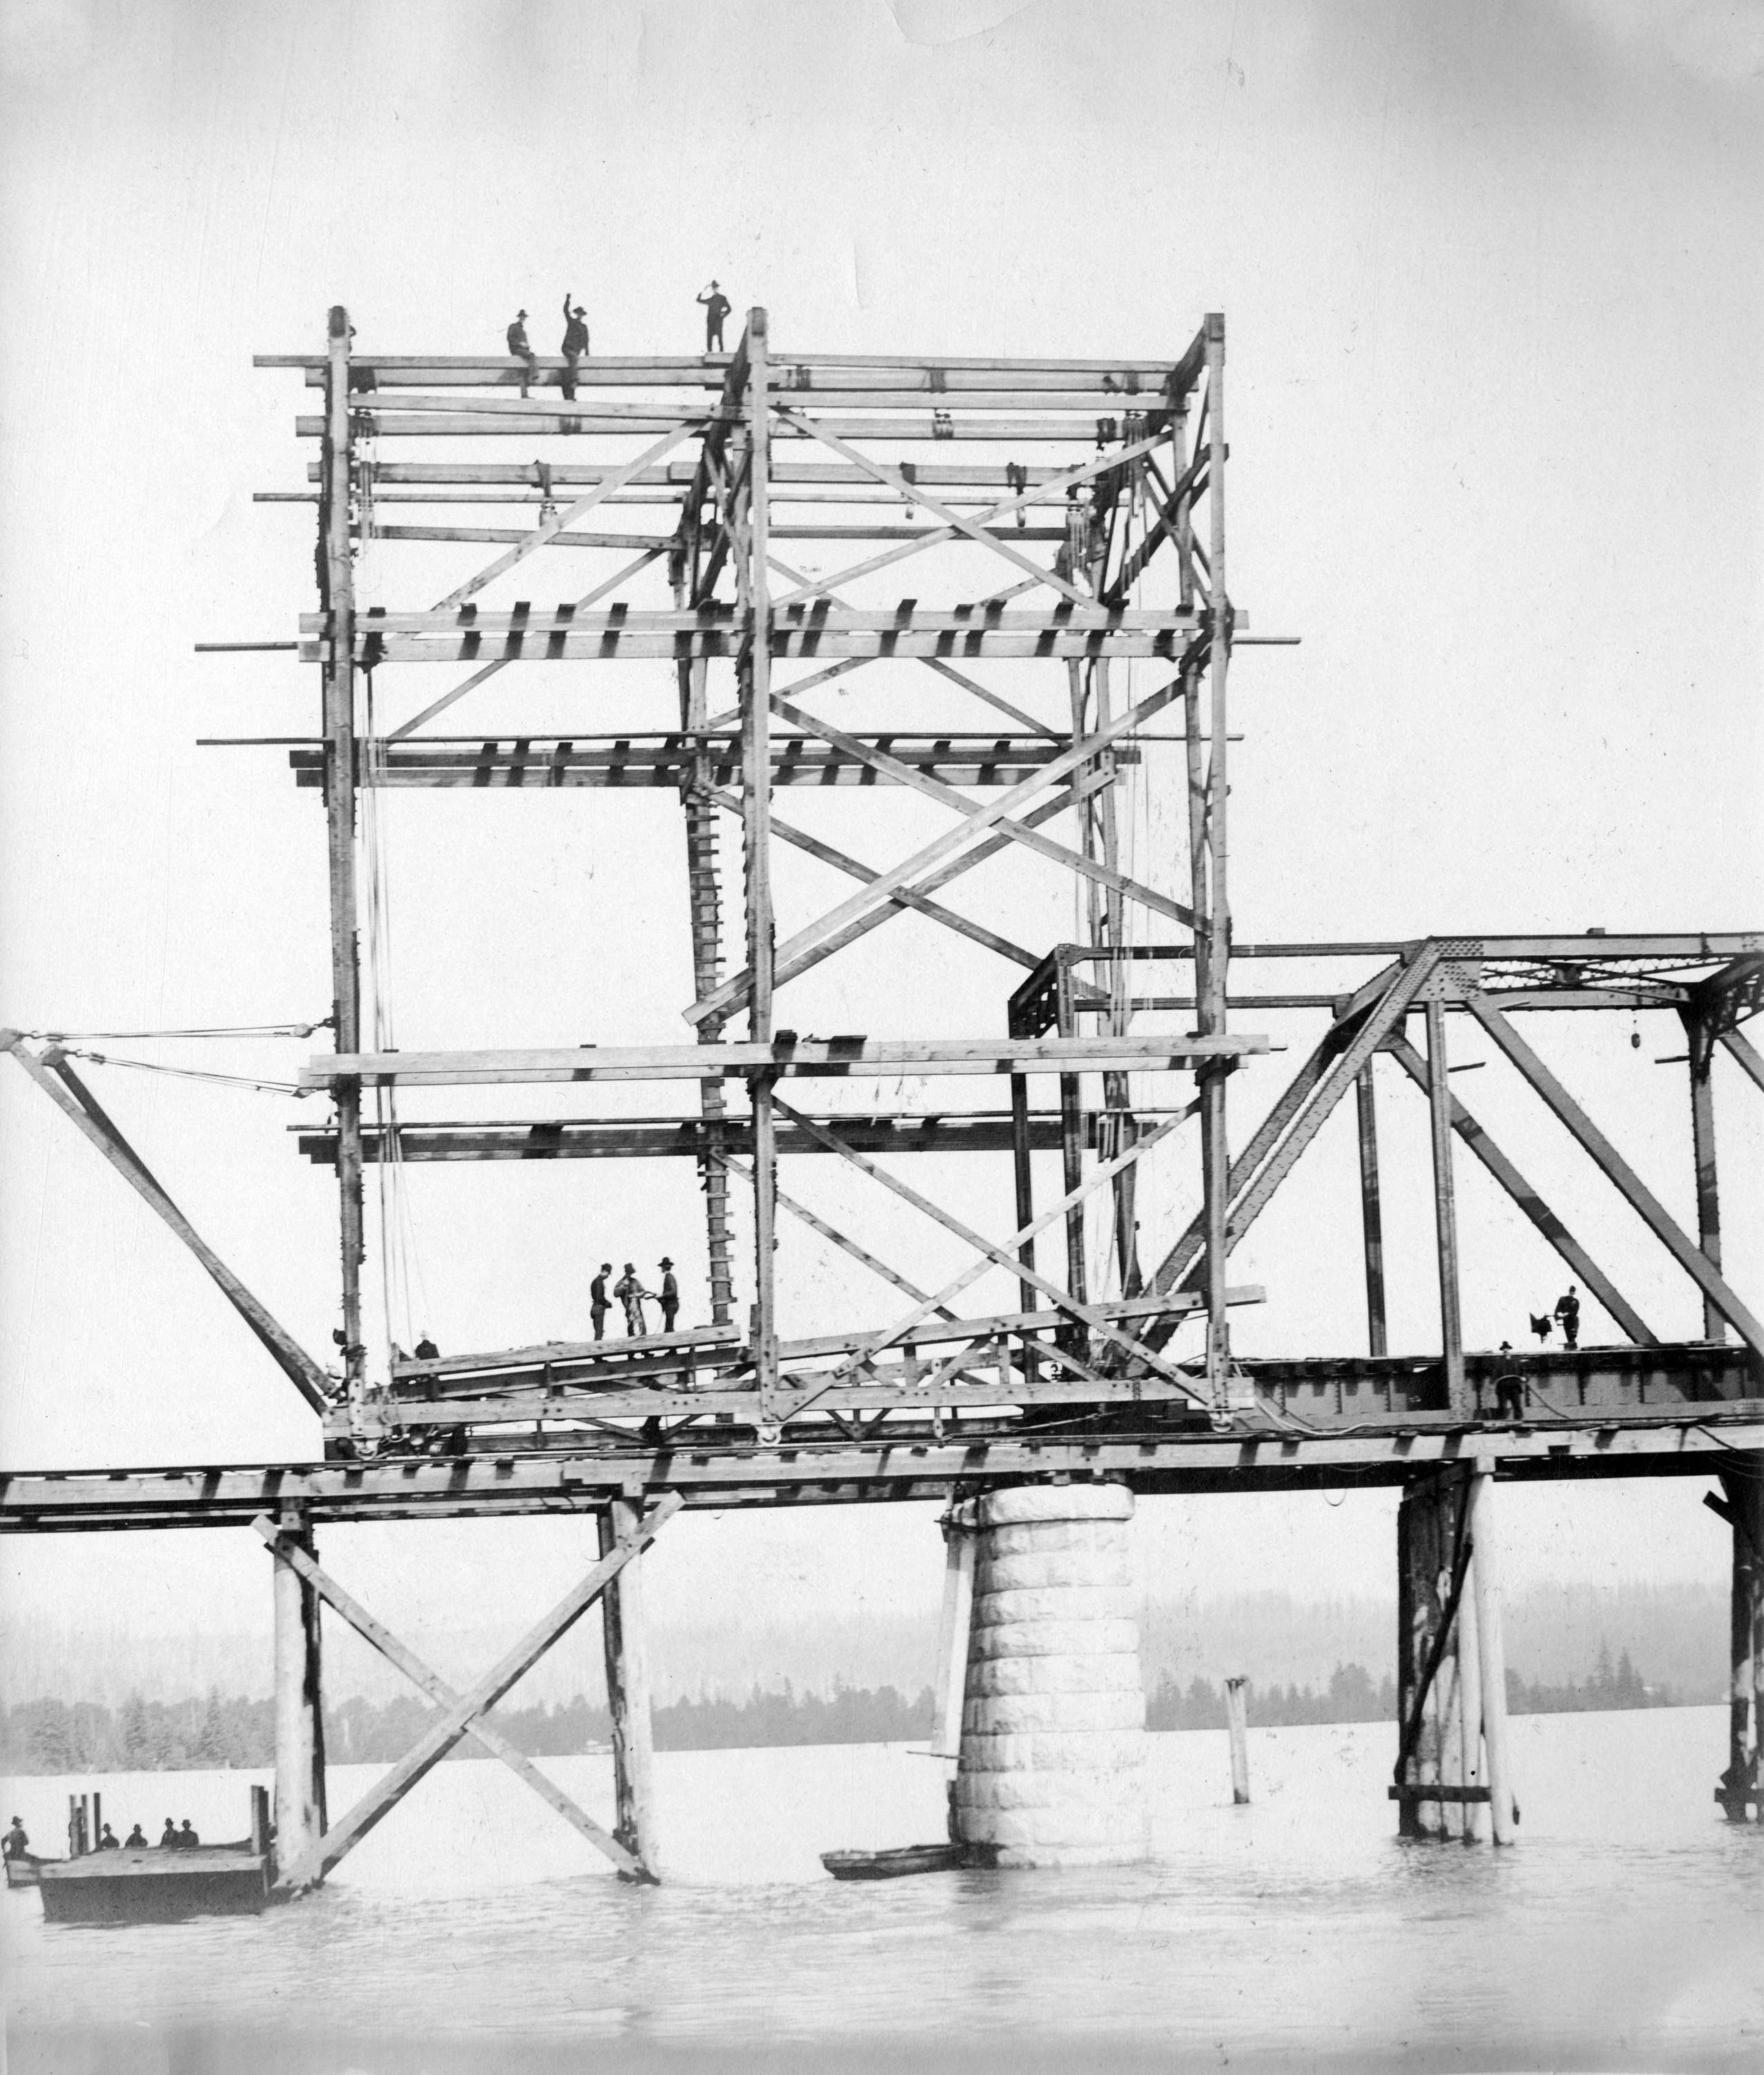 Superstructure: [Construction Of The Bridge Superstructure]